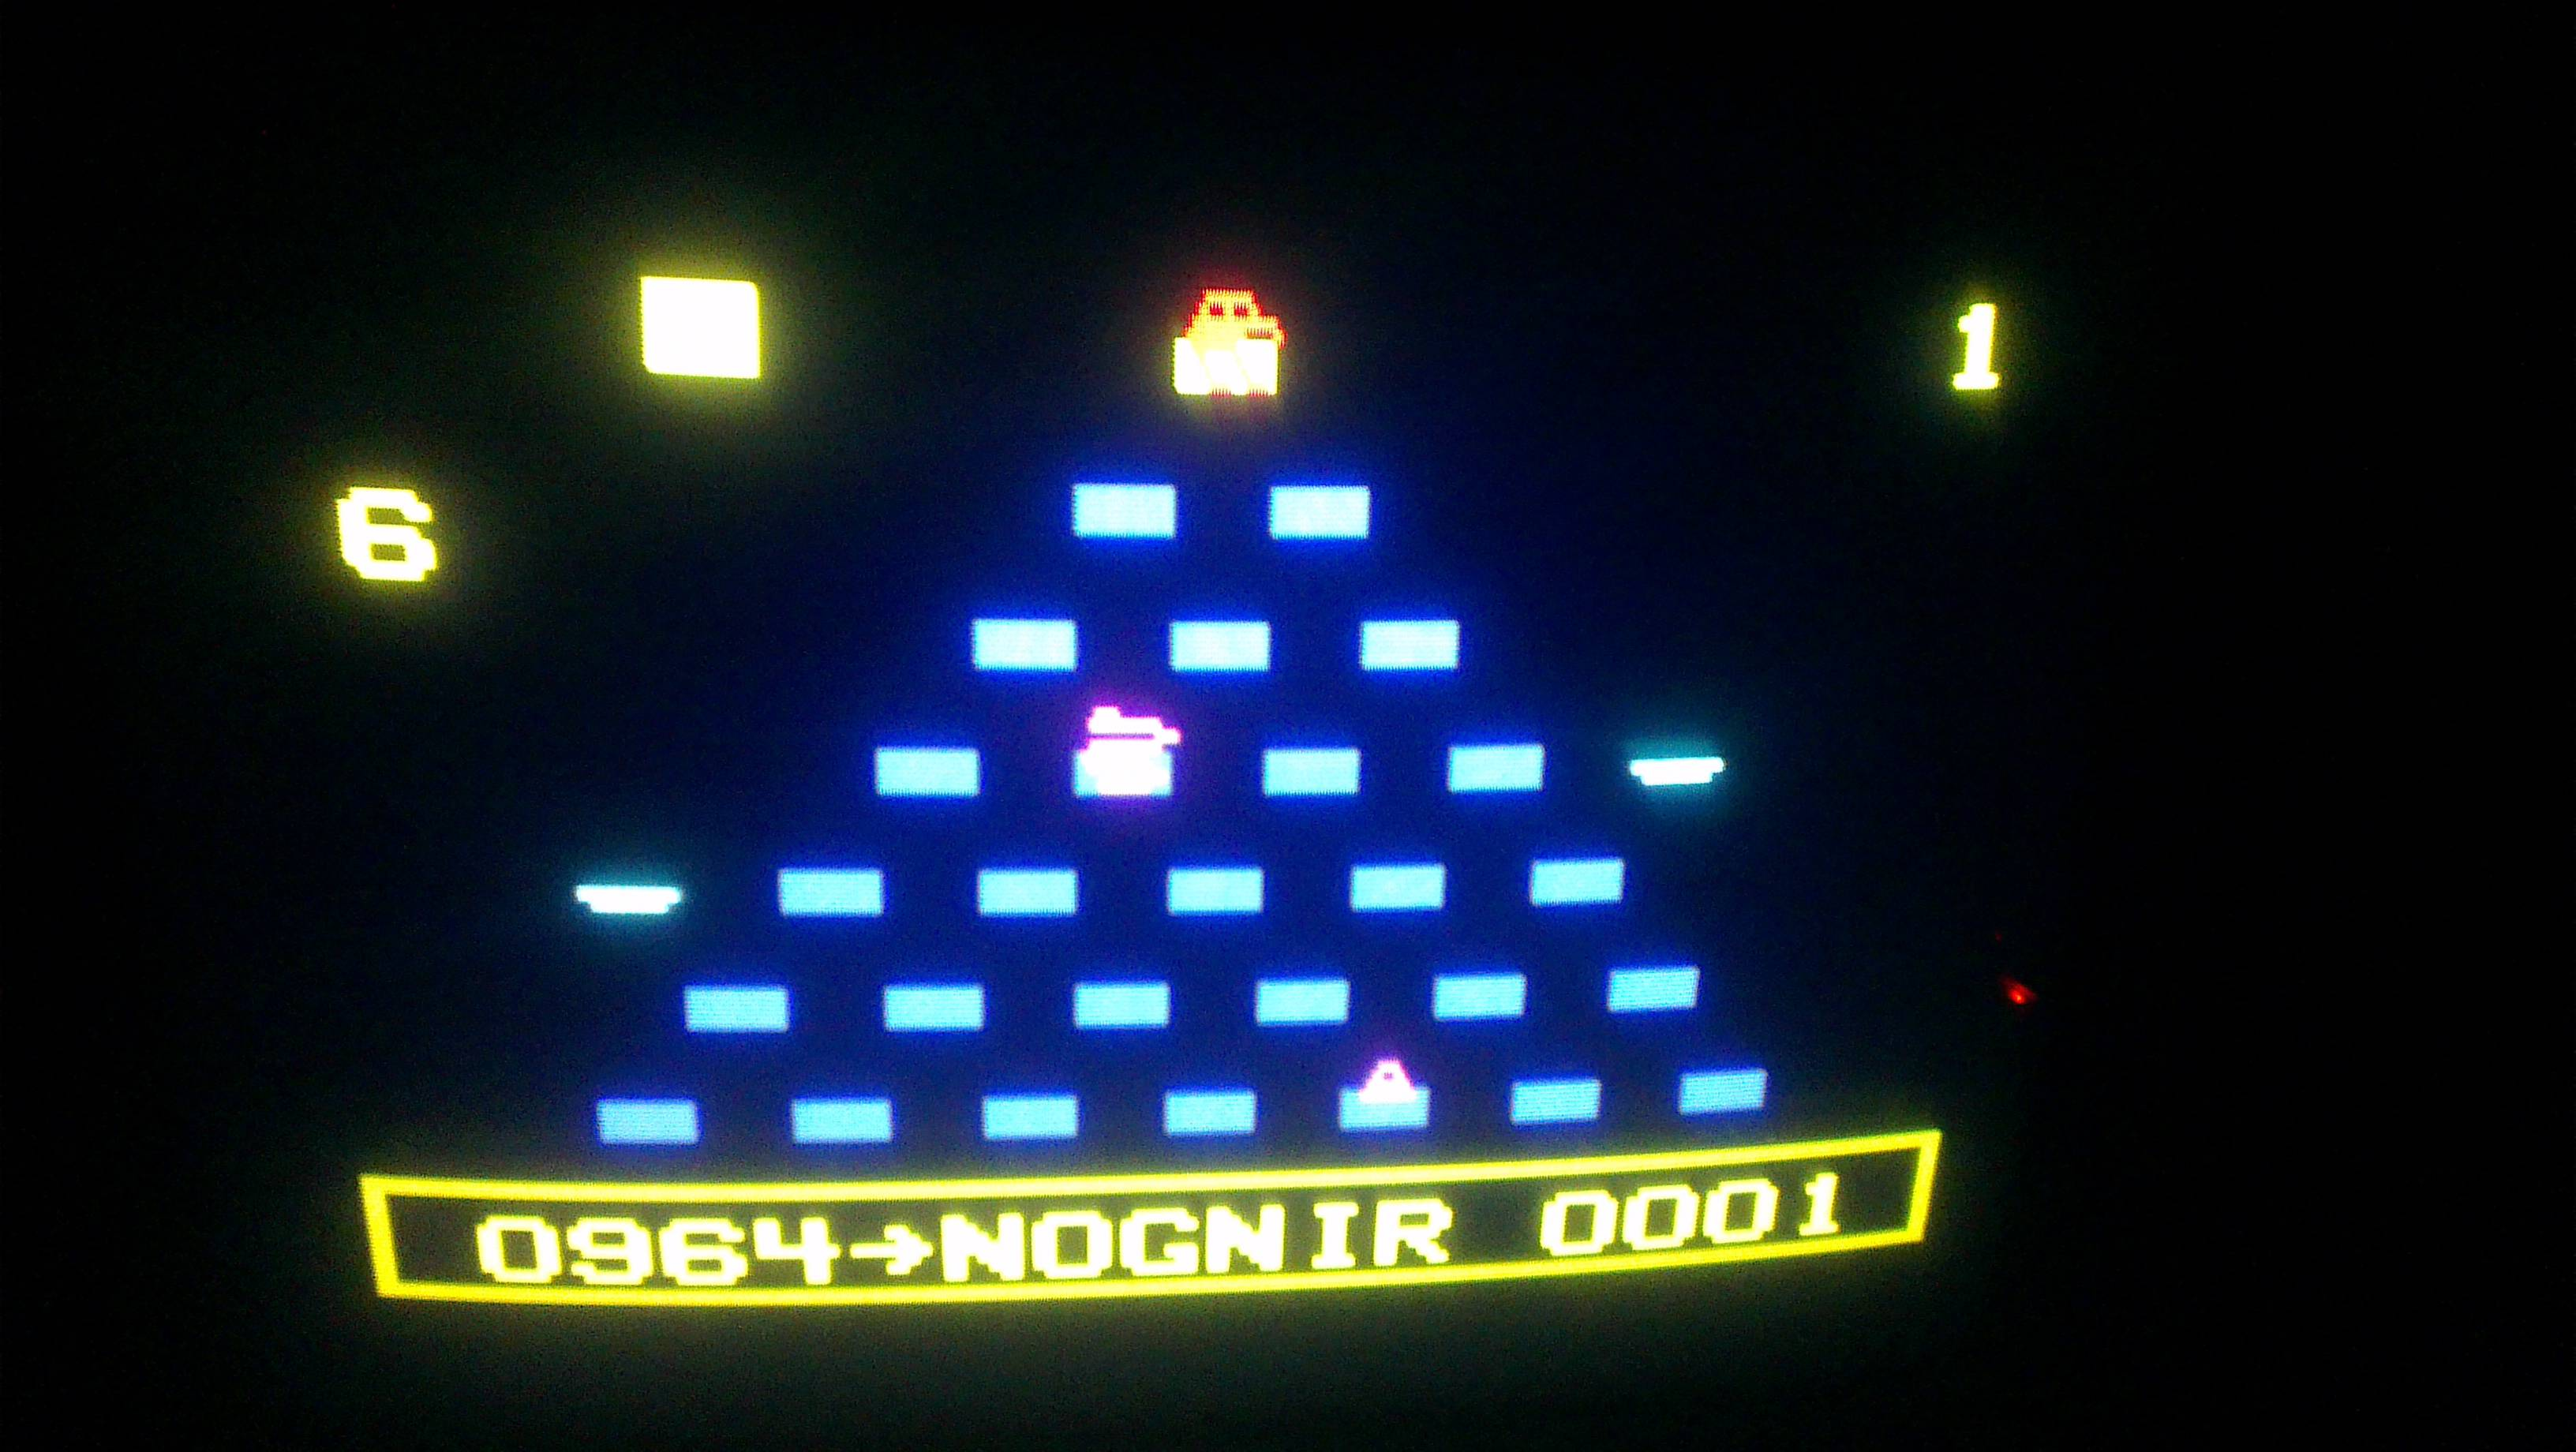 Q*bert 964 points